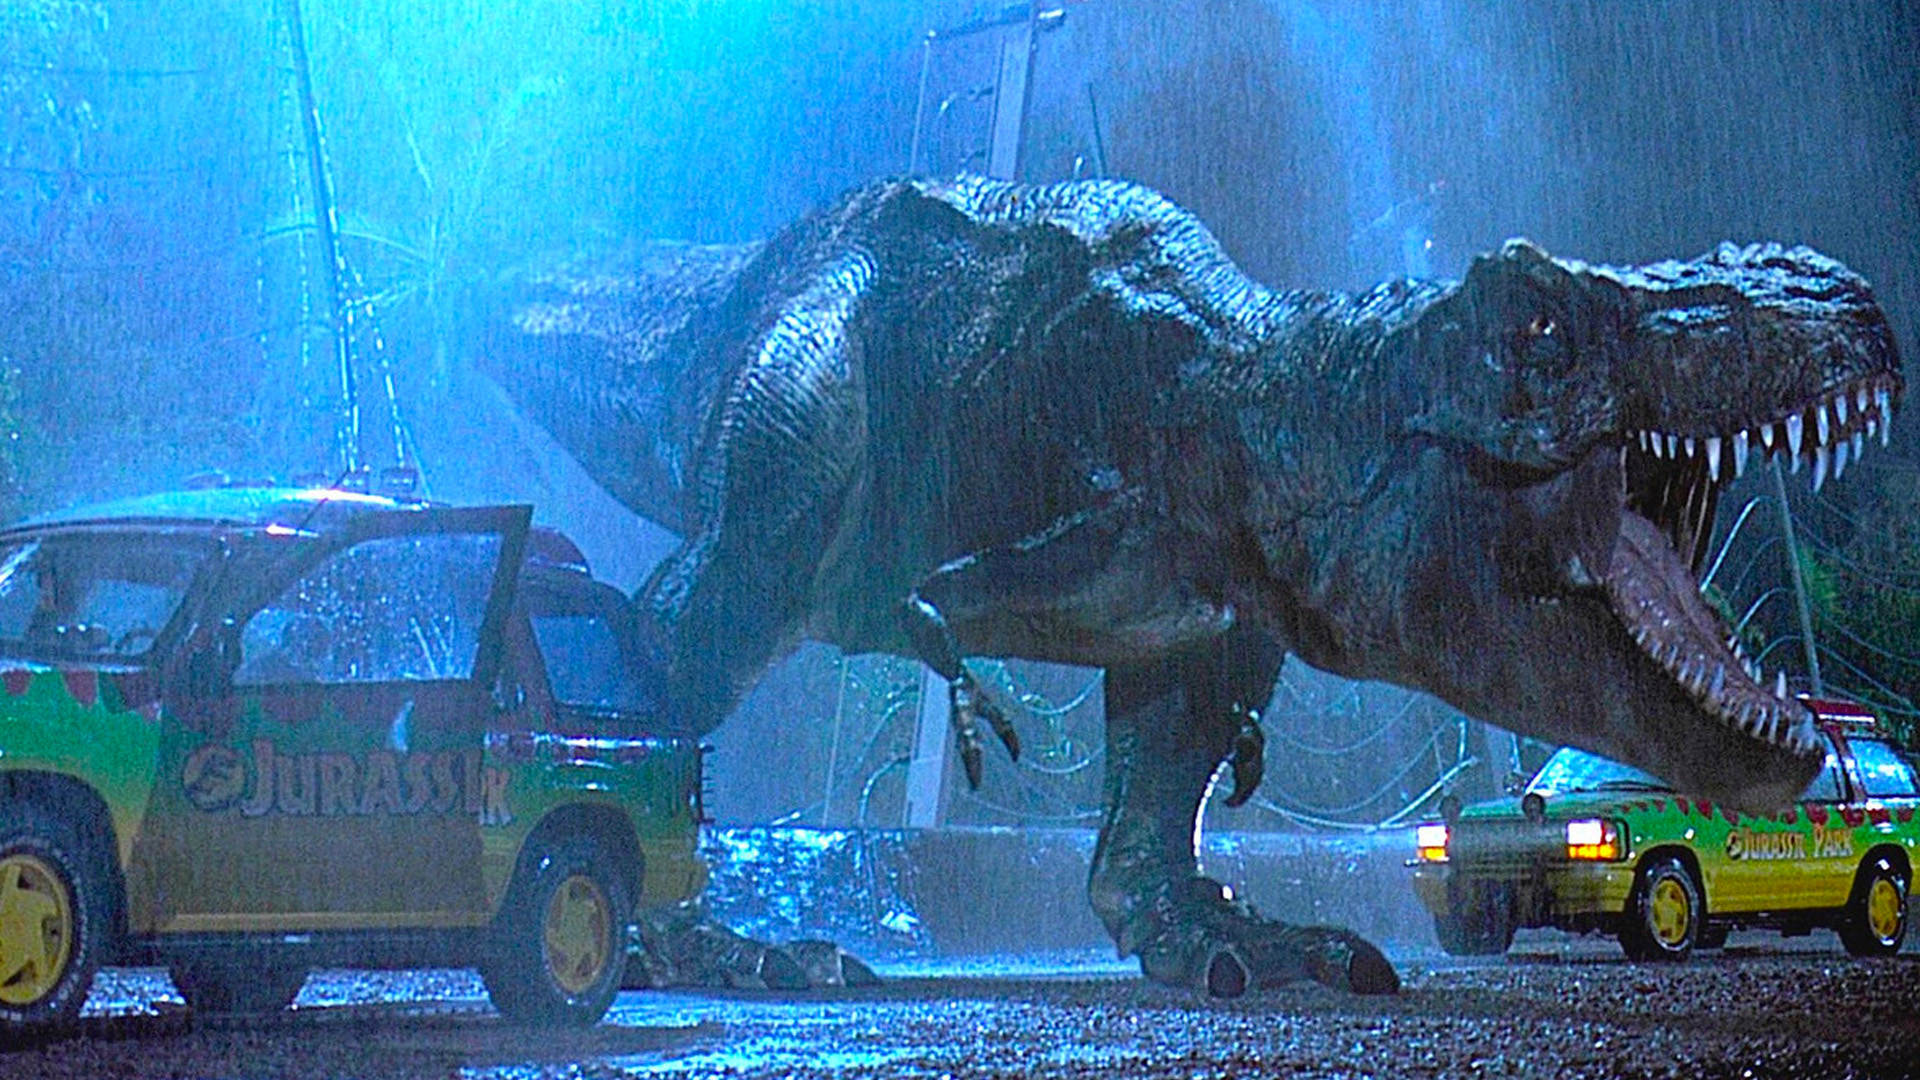 Jurassic Park S T Rex Paddock Attack And Its Impact On Cgi